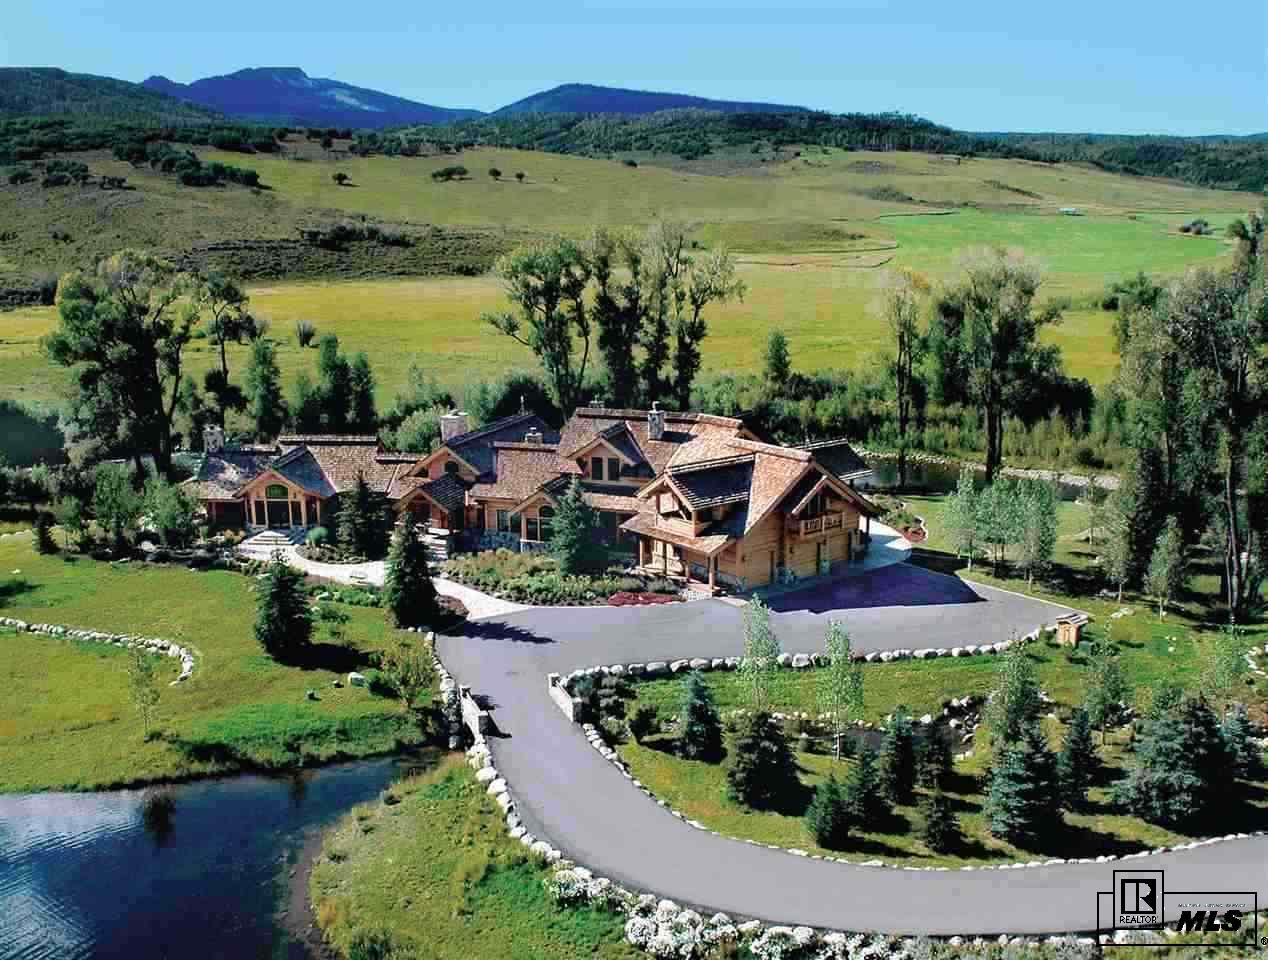 Image of  for Sale near Steamboat Springs, Colorado, in Routt County: 140.2 acres